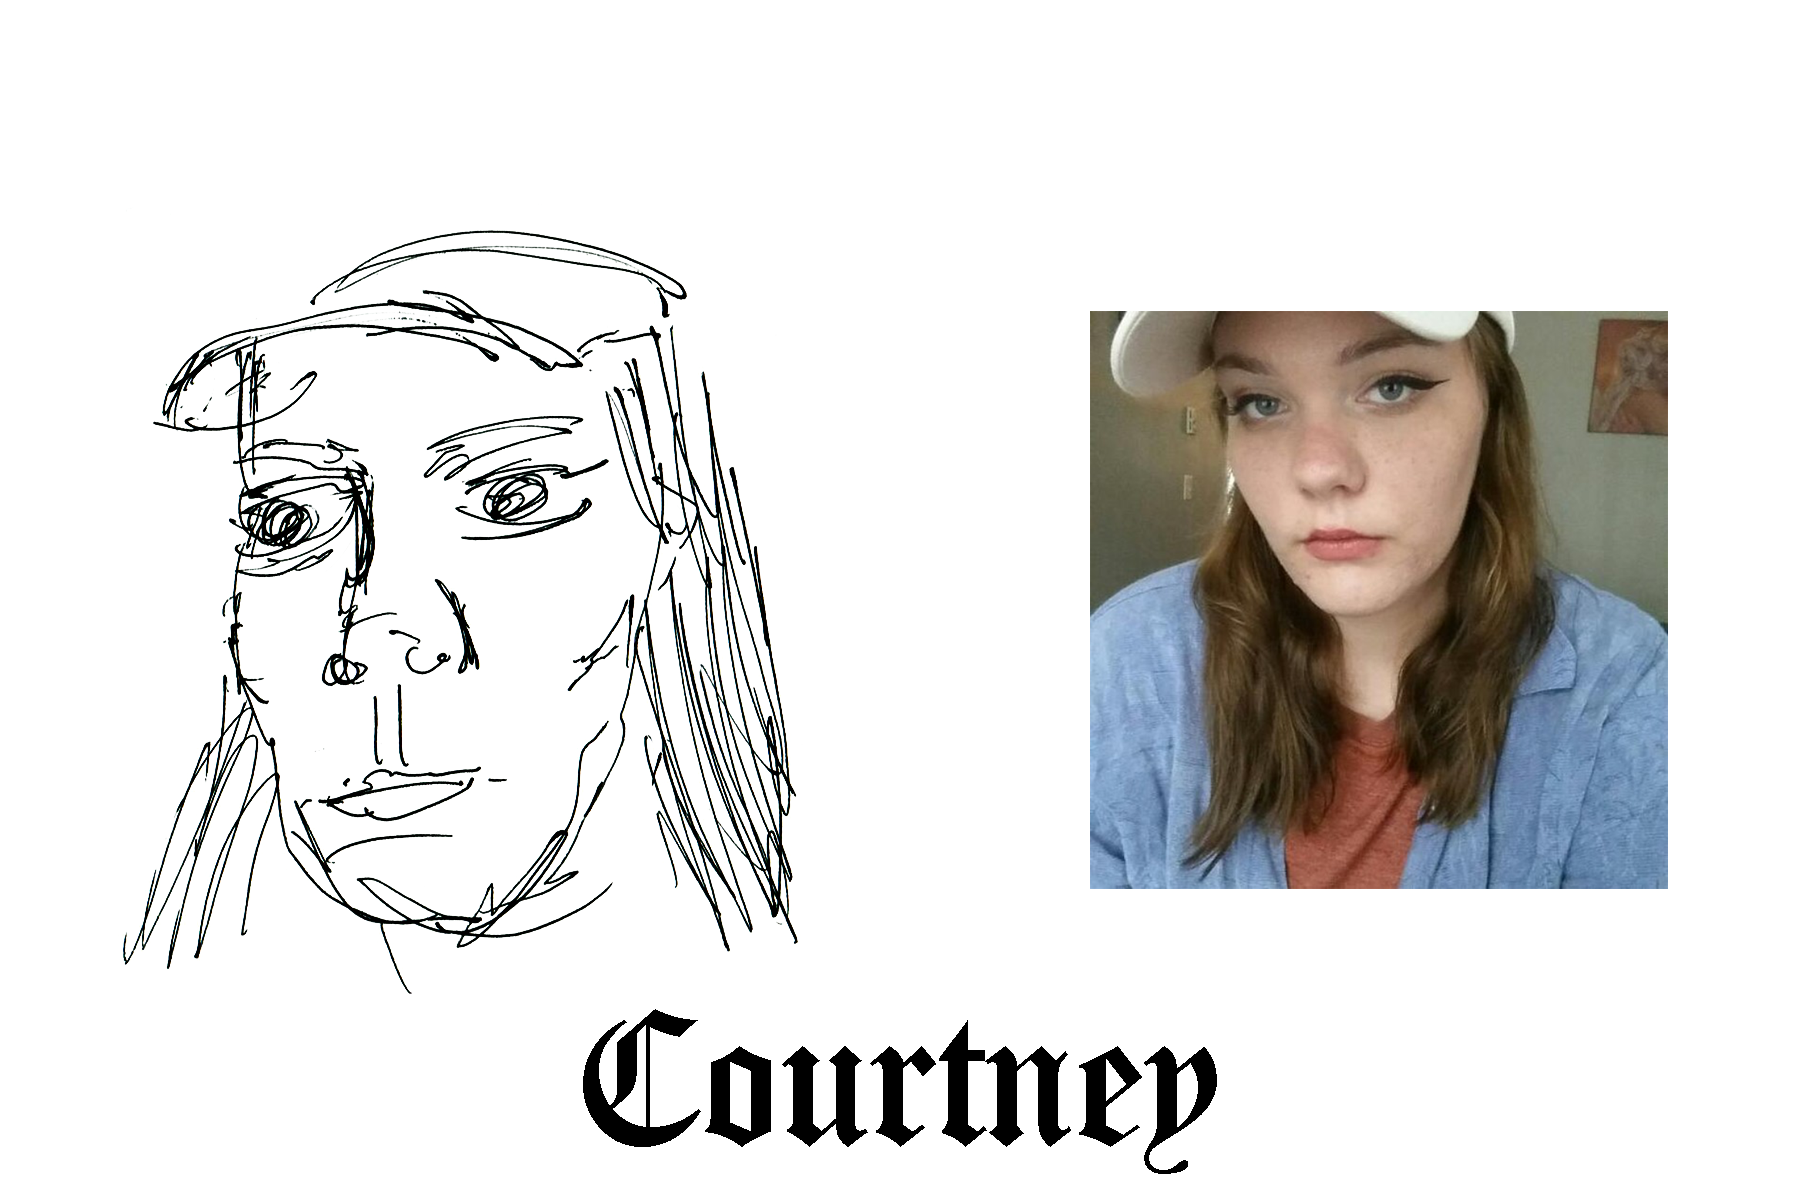 Courtney.